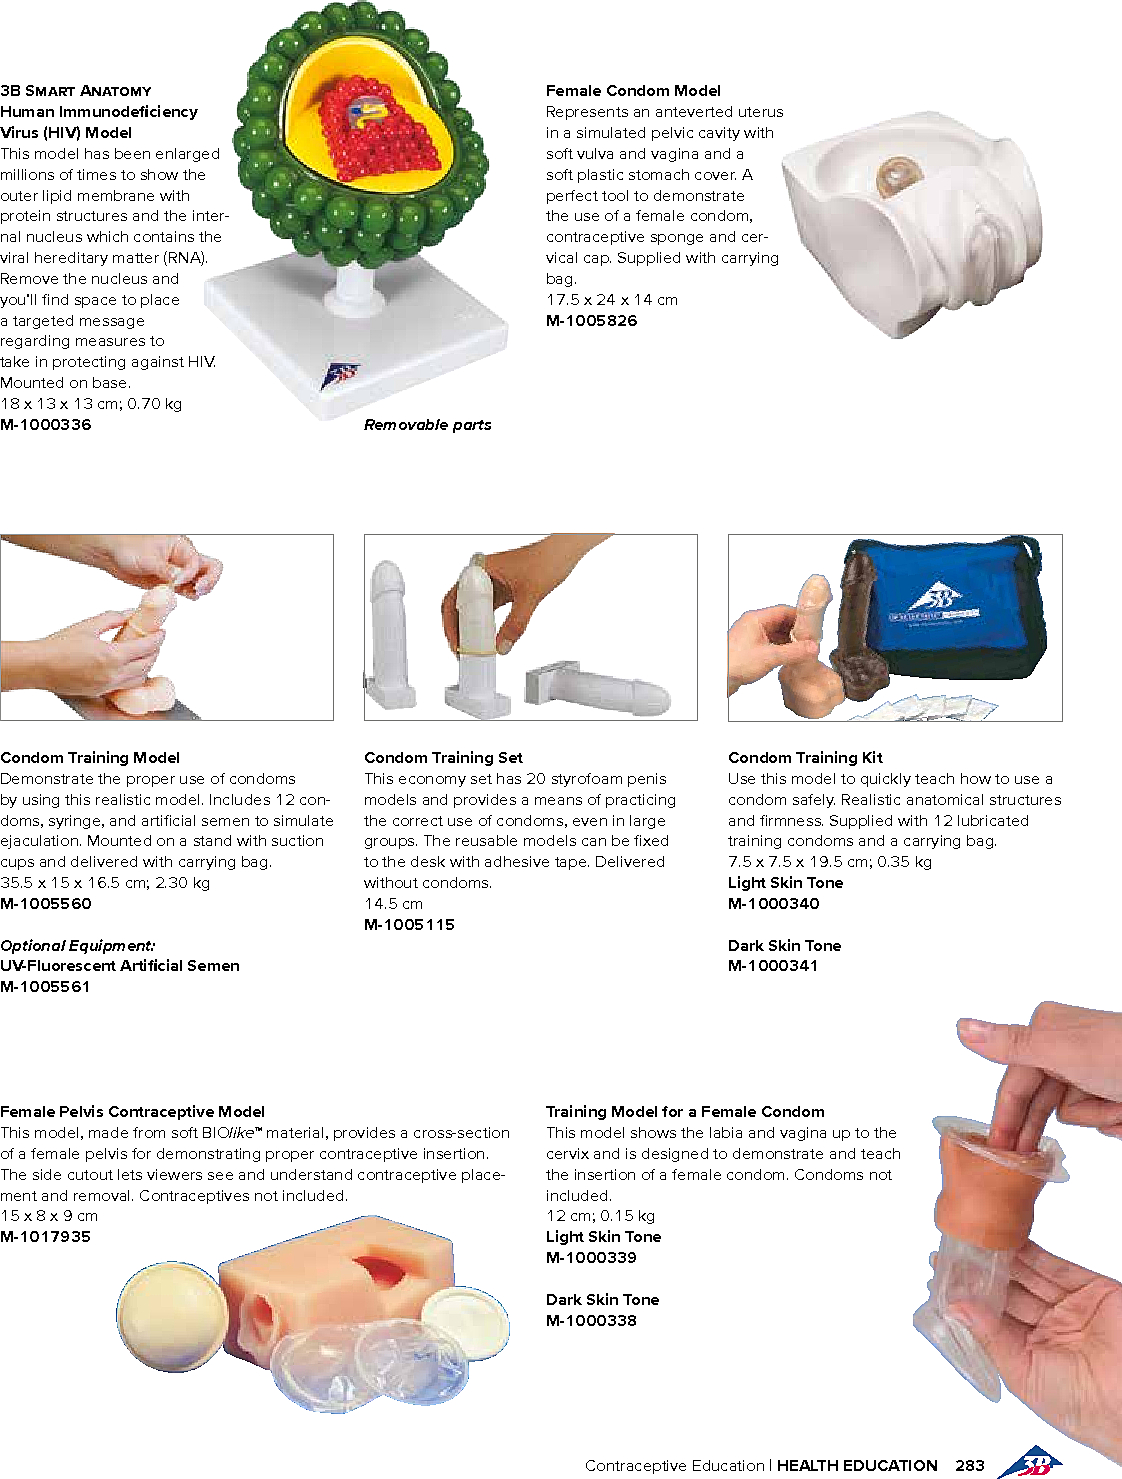 0183CatalogPage1Oct20200311.jpg